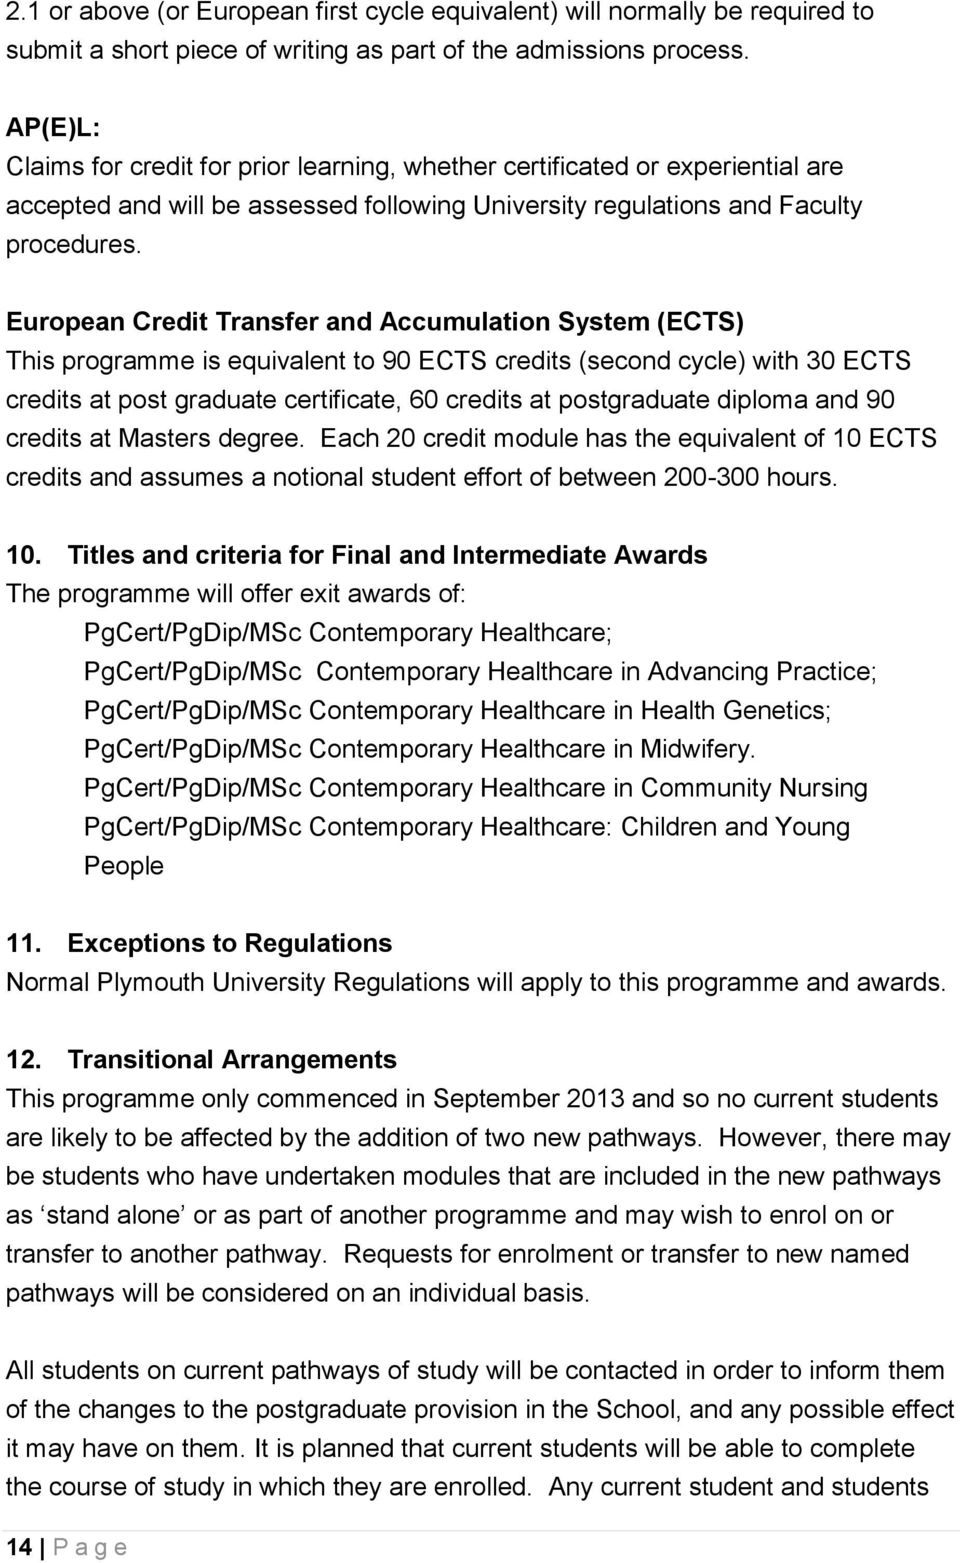 European Credit Transfer and Accumulation System (ECTS) This programme is equivalent to 90 ECTS credits (second cycle) with 30 ECTS credits at post graduate certificate, 60 credits at postgraduate